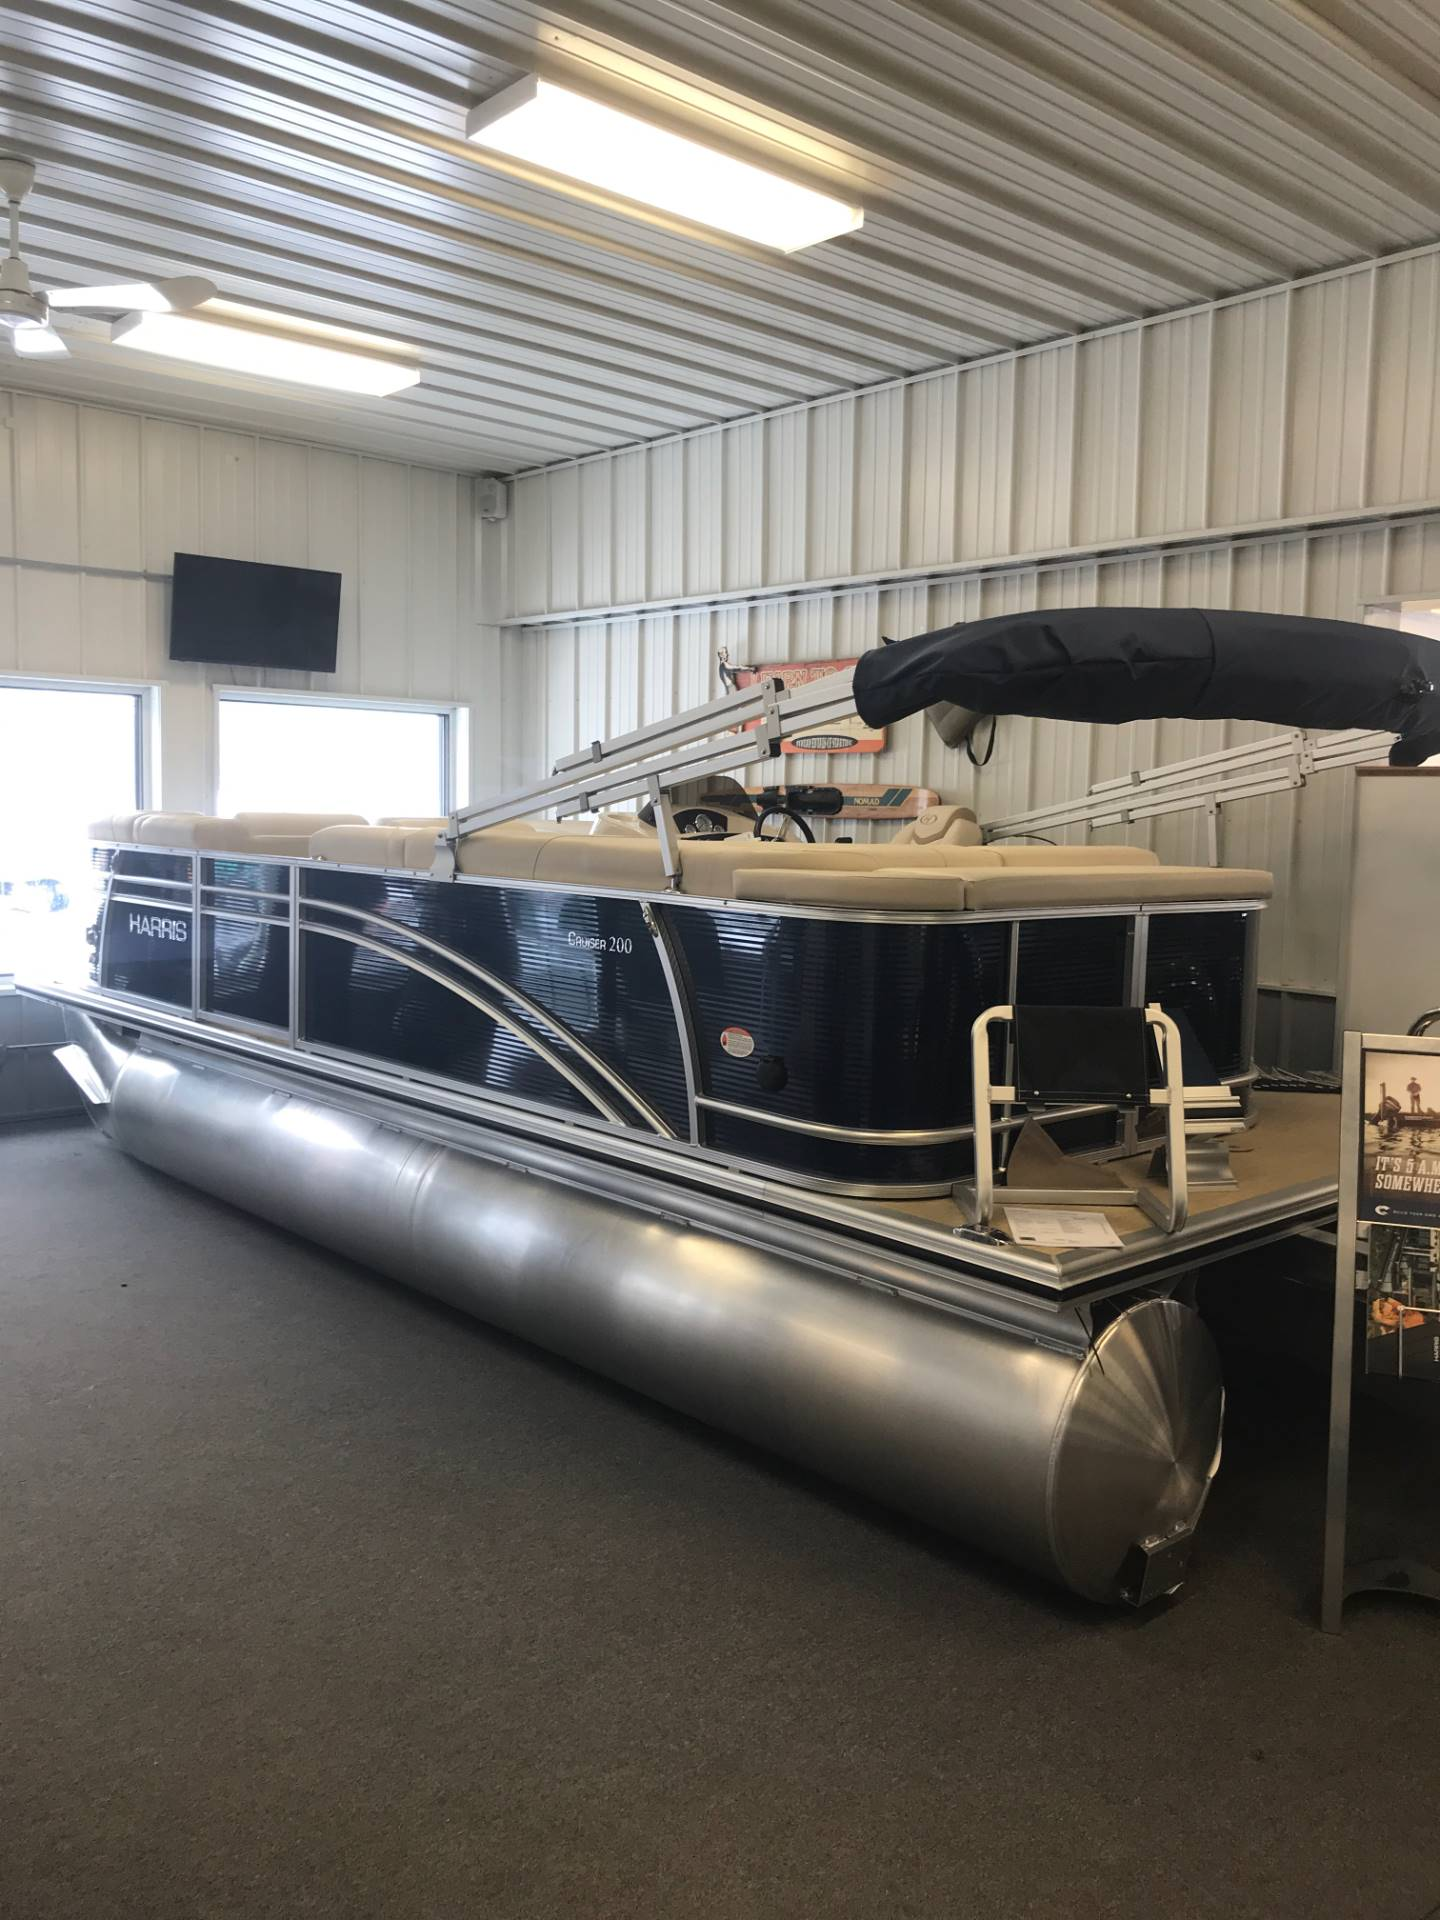 2018 Harris Cruiser 200 in Cable, Wisconsin